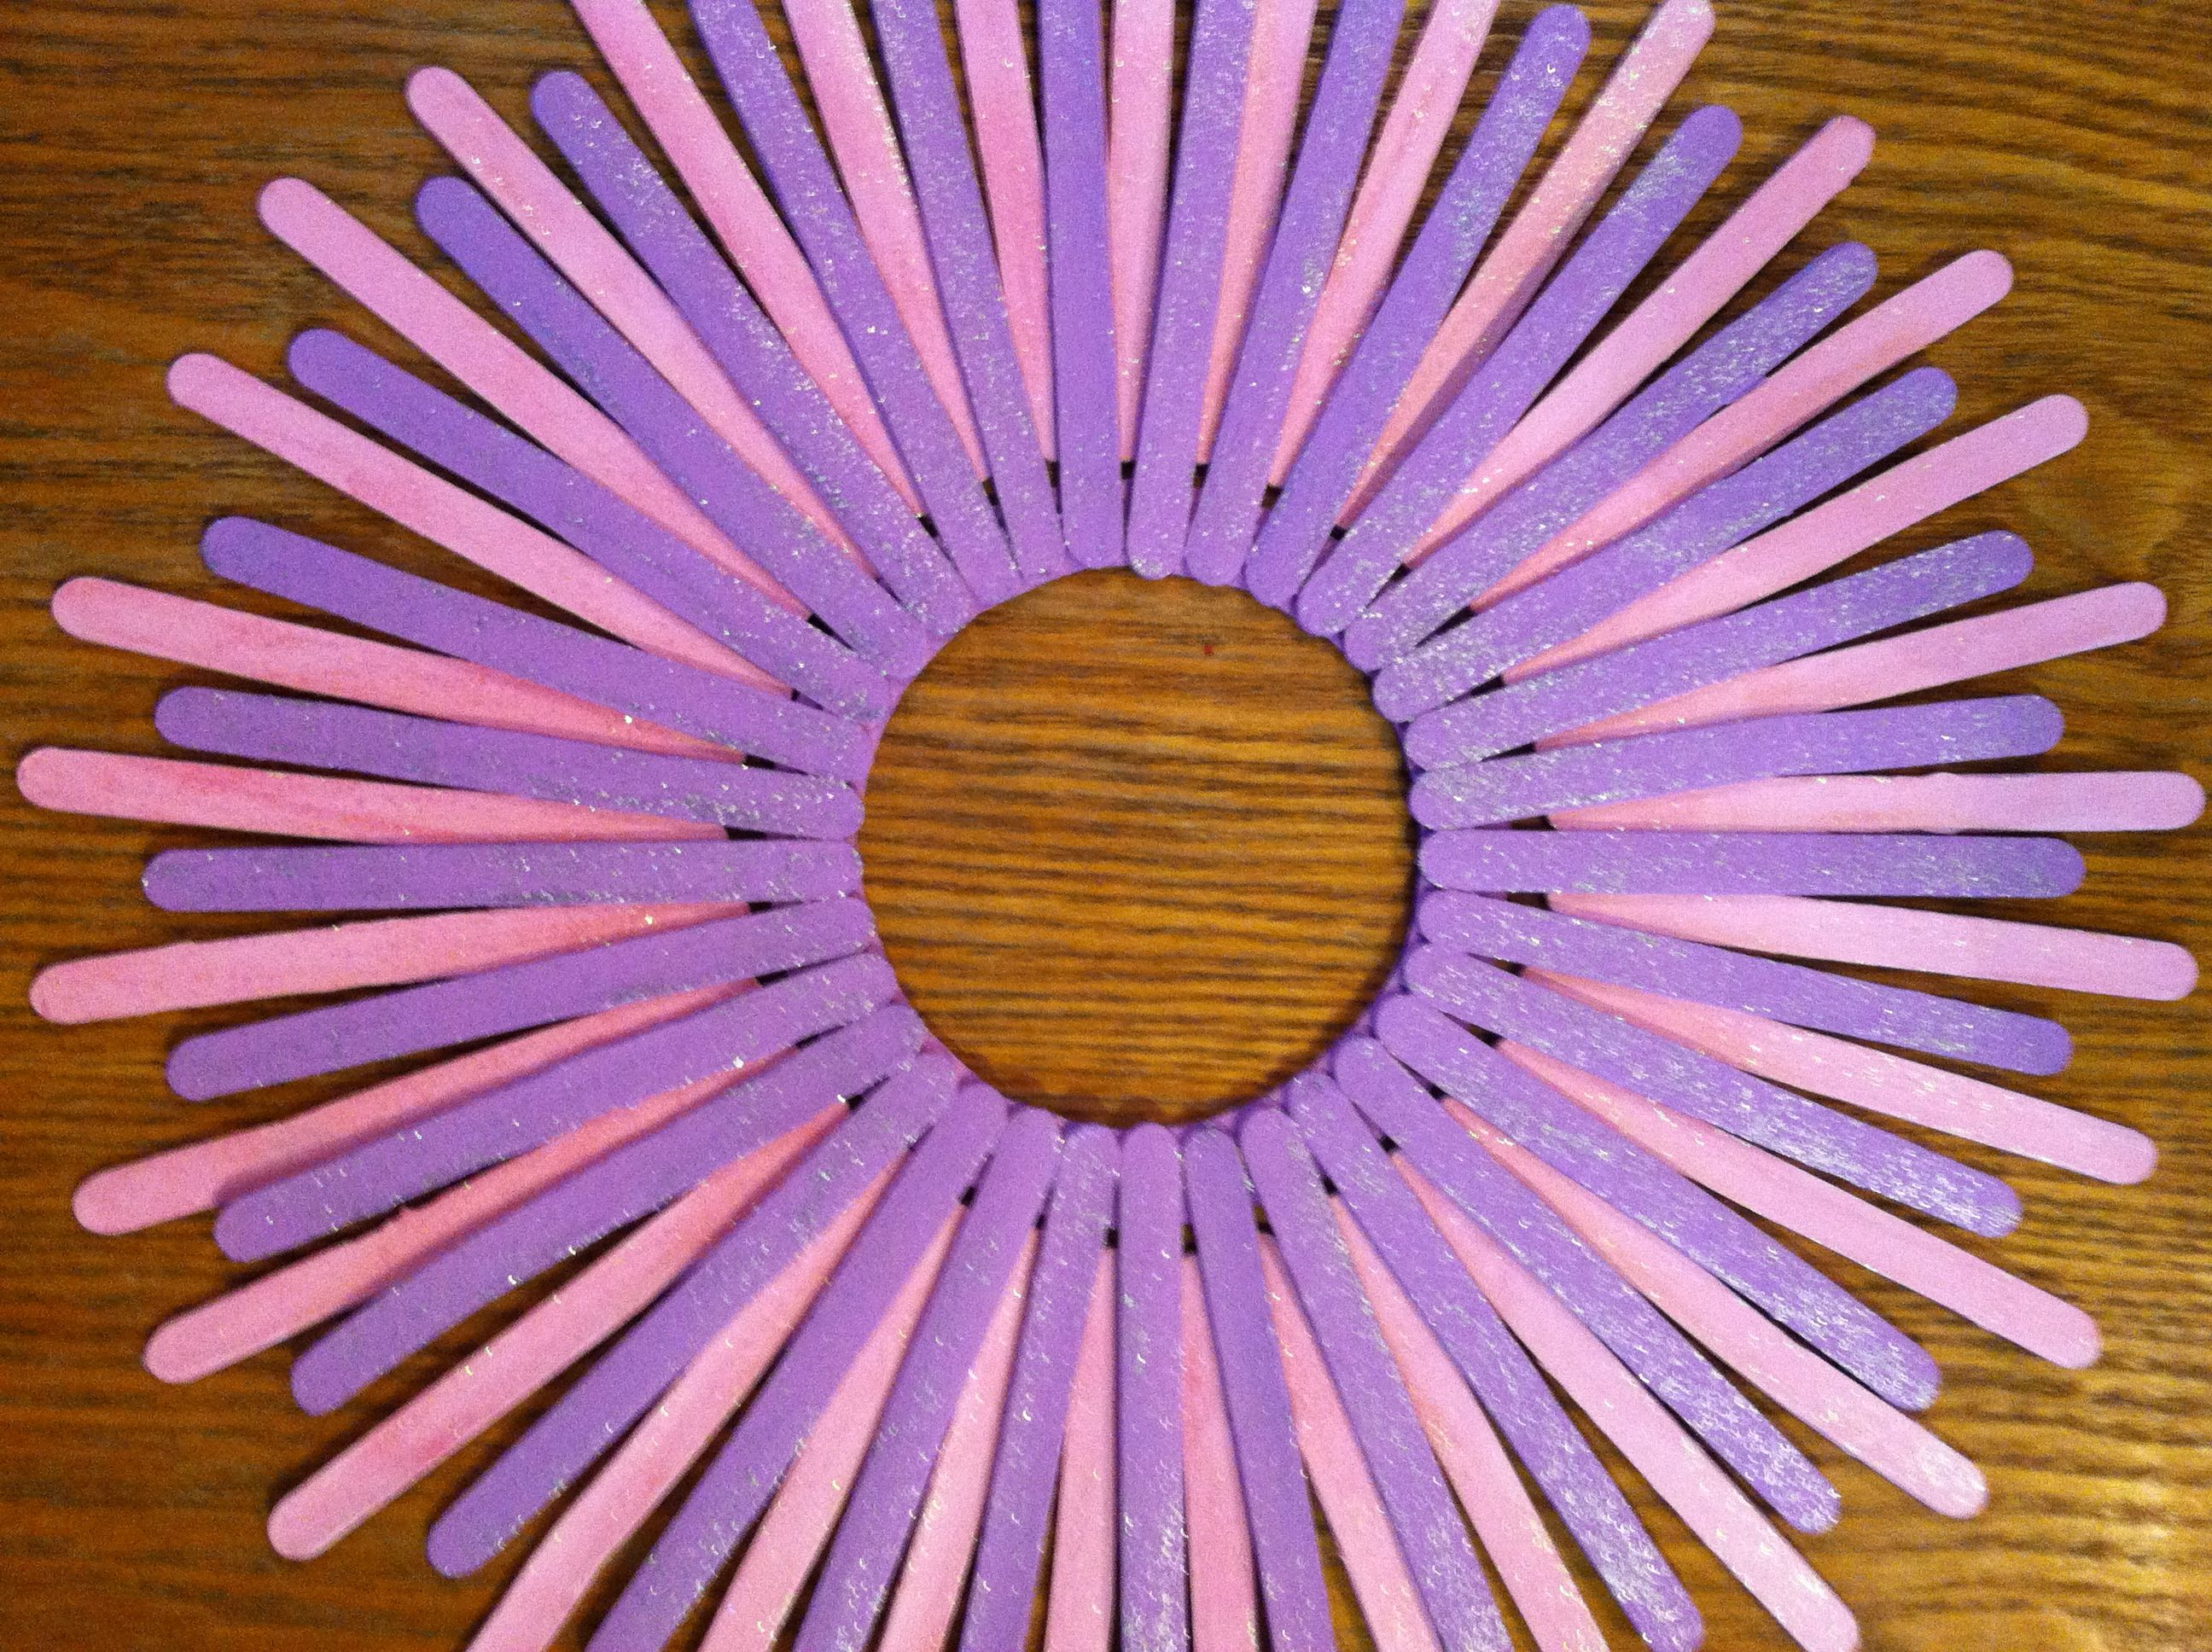 Popsicle stick wreath sticks can be painted many colors and glitter